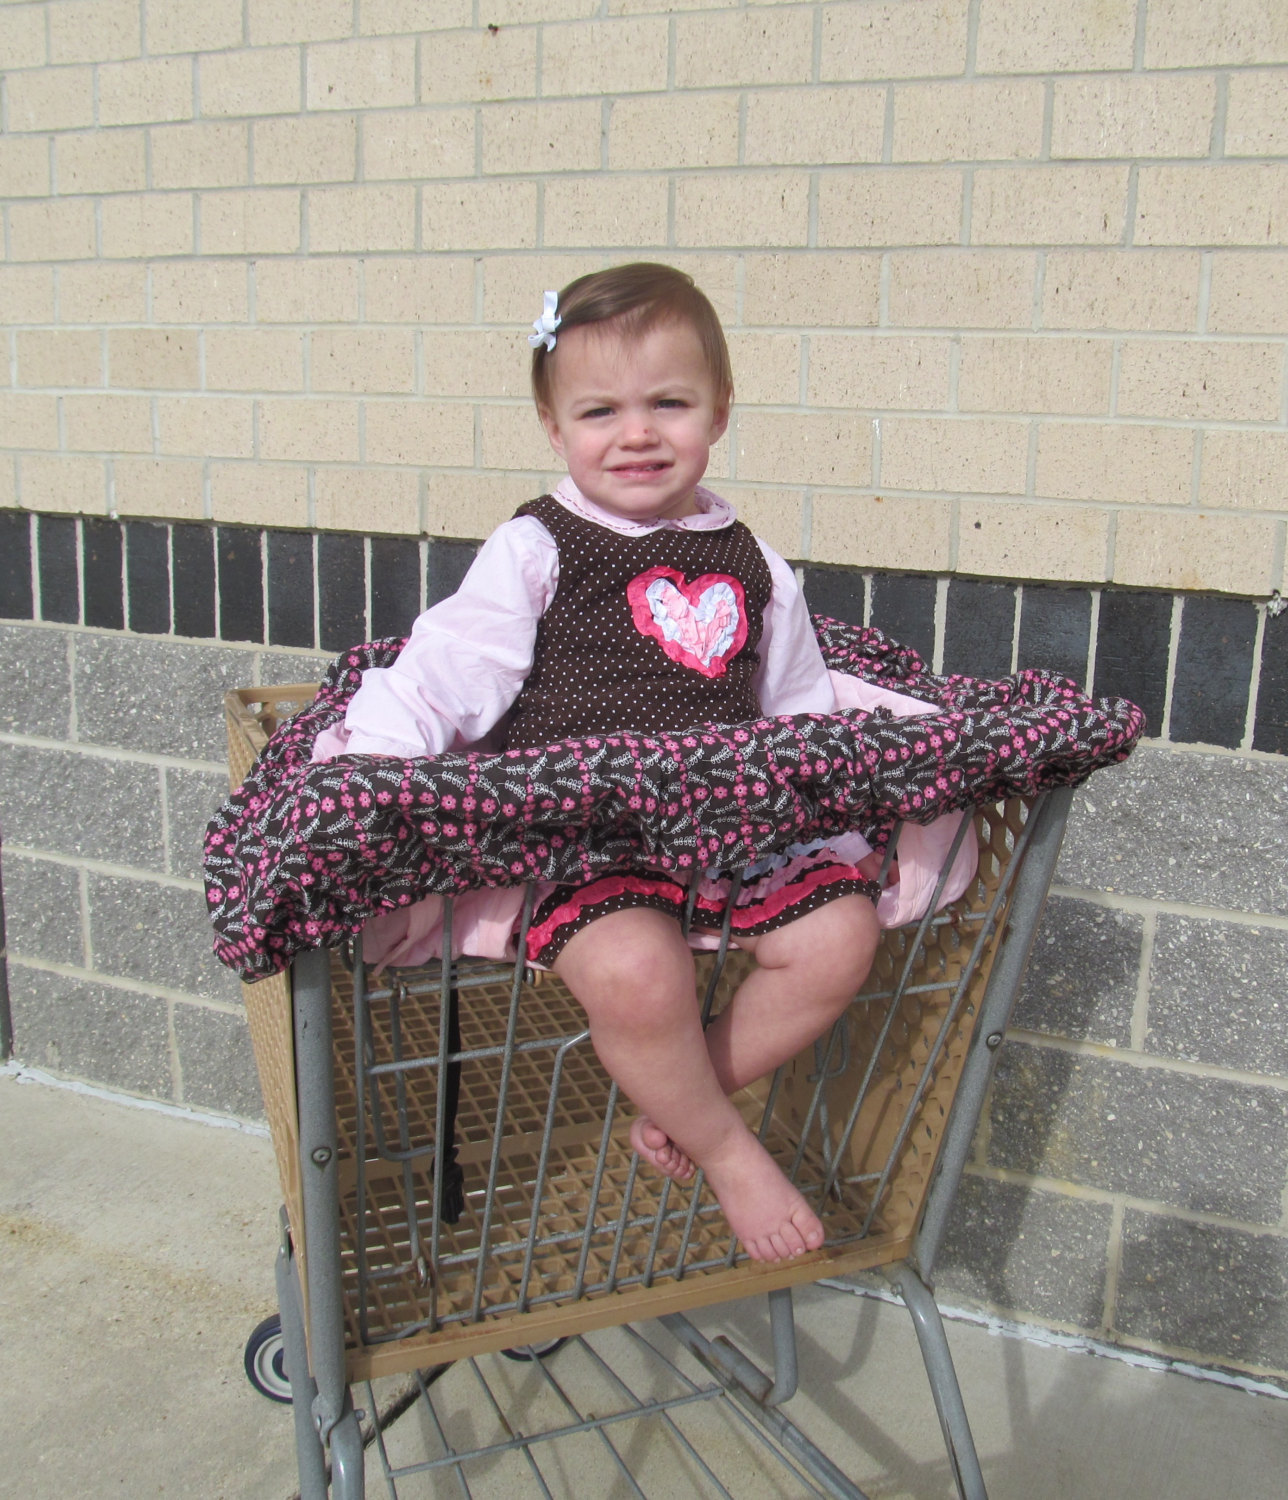 Primary image for Handmade Shopping Cart Cover, keeps baby away from germs, even fits Target Carts